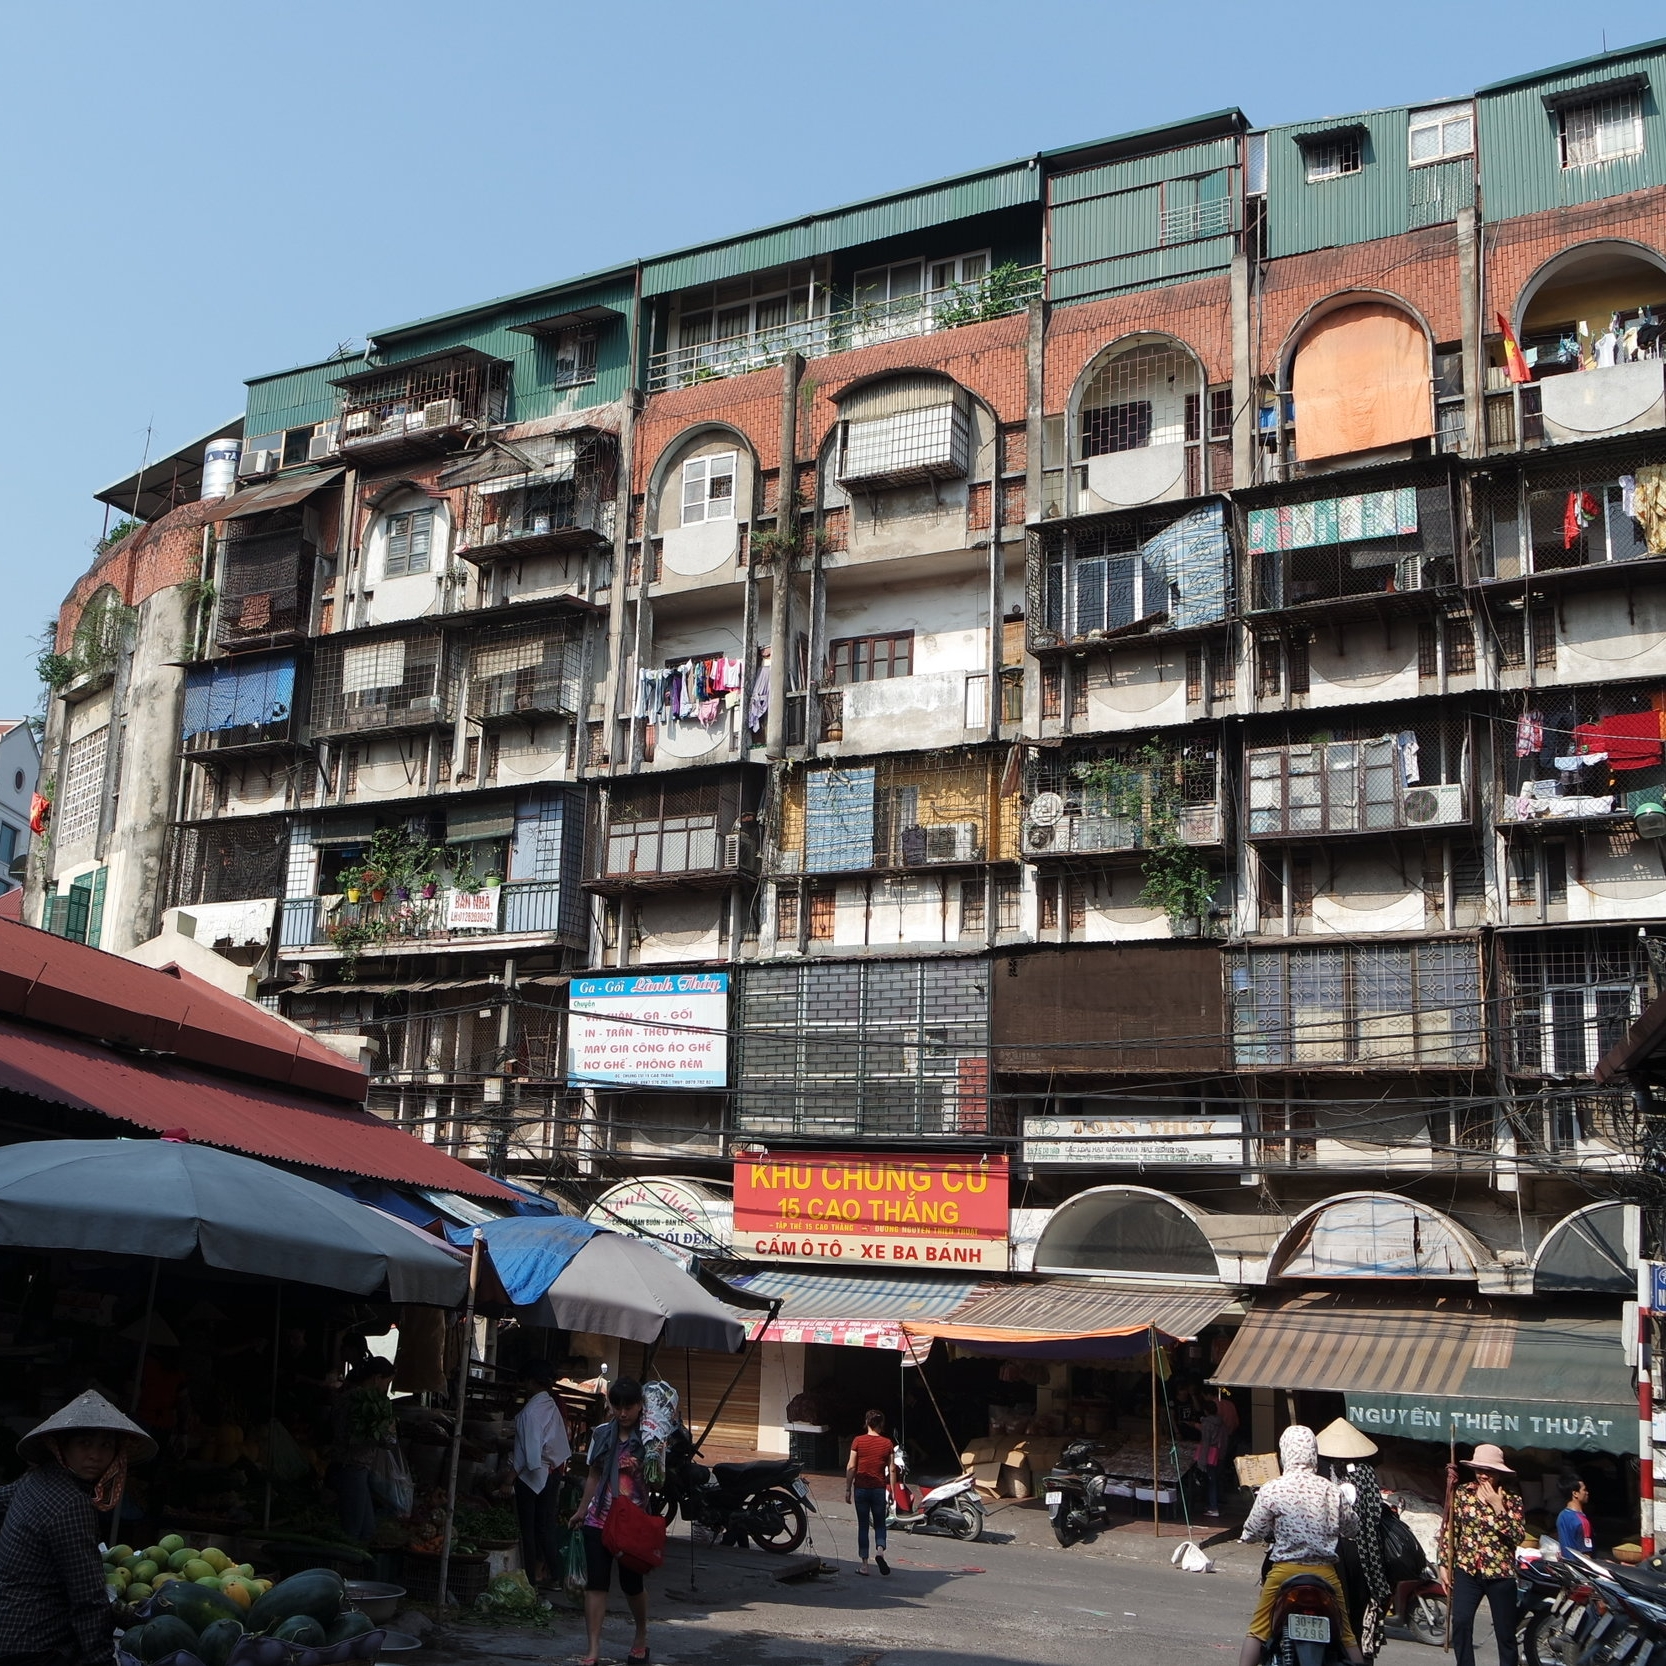 Housing in the center of Hanoi, Vietnam.